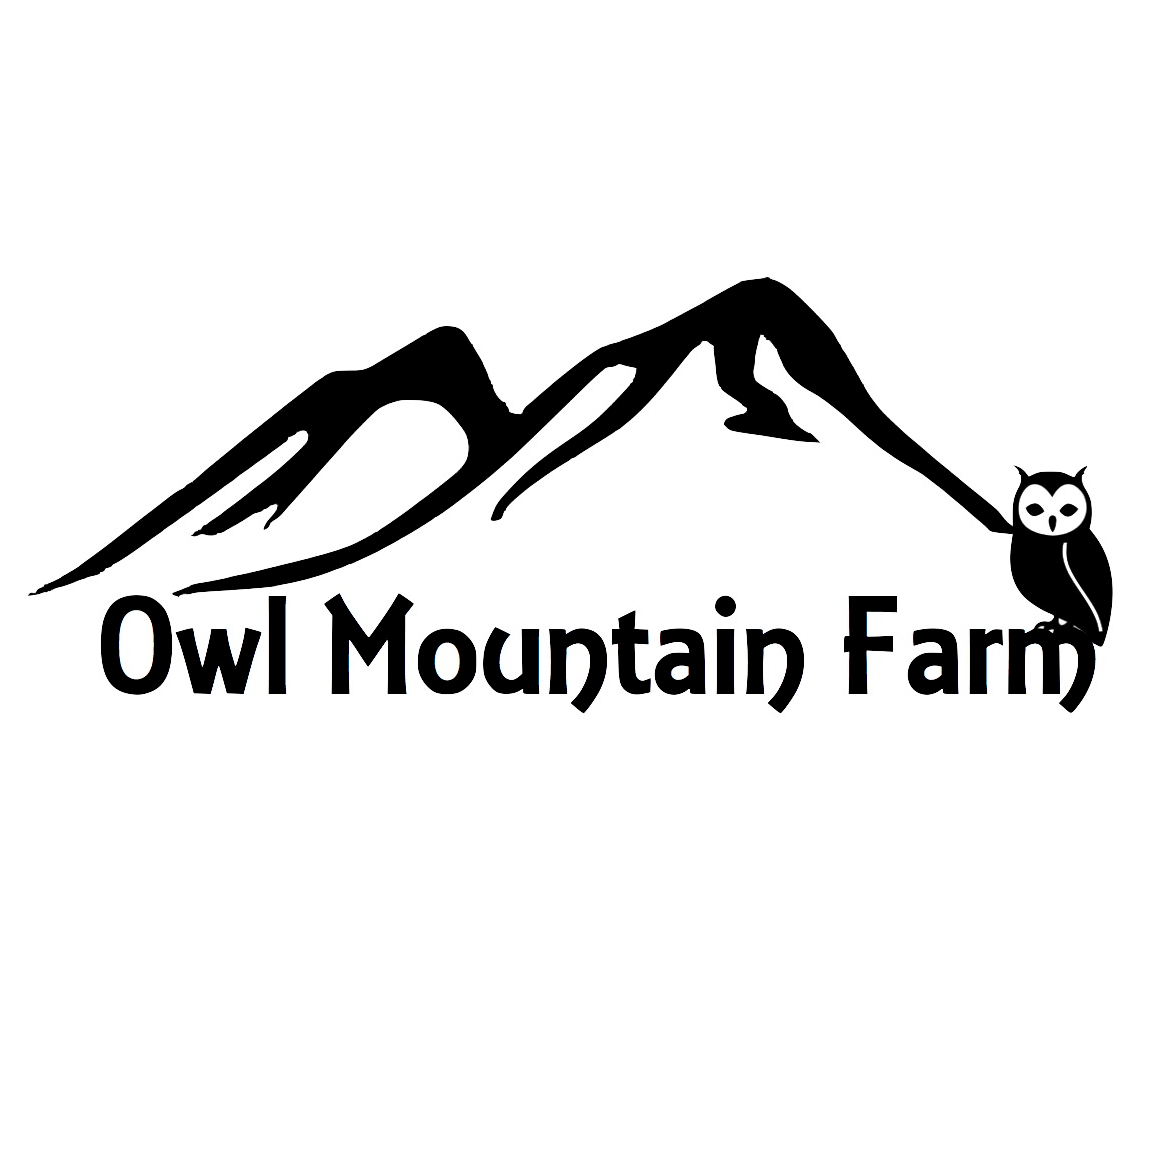 Owl Mountain Farm